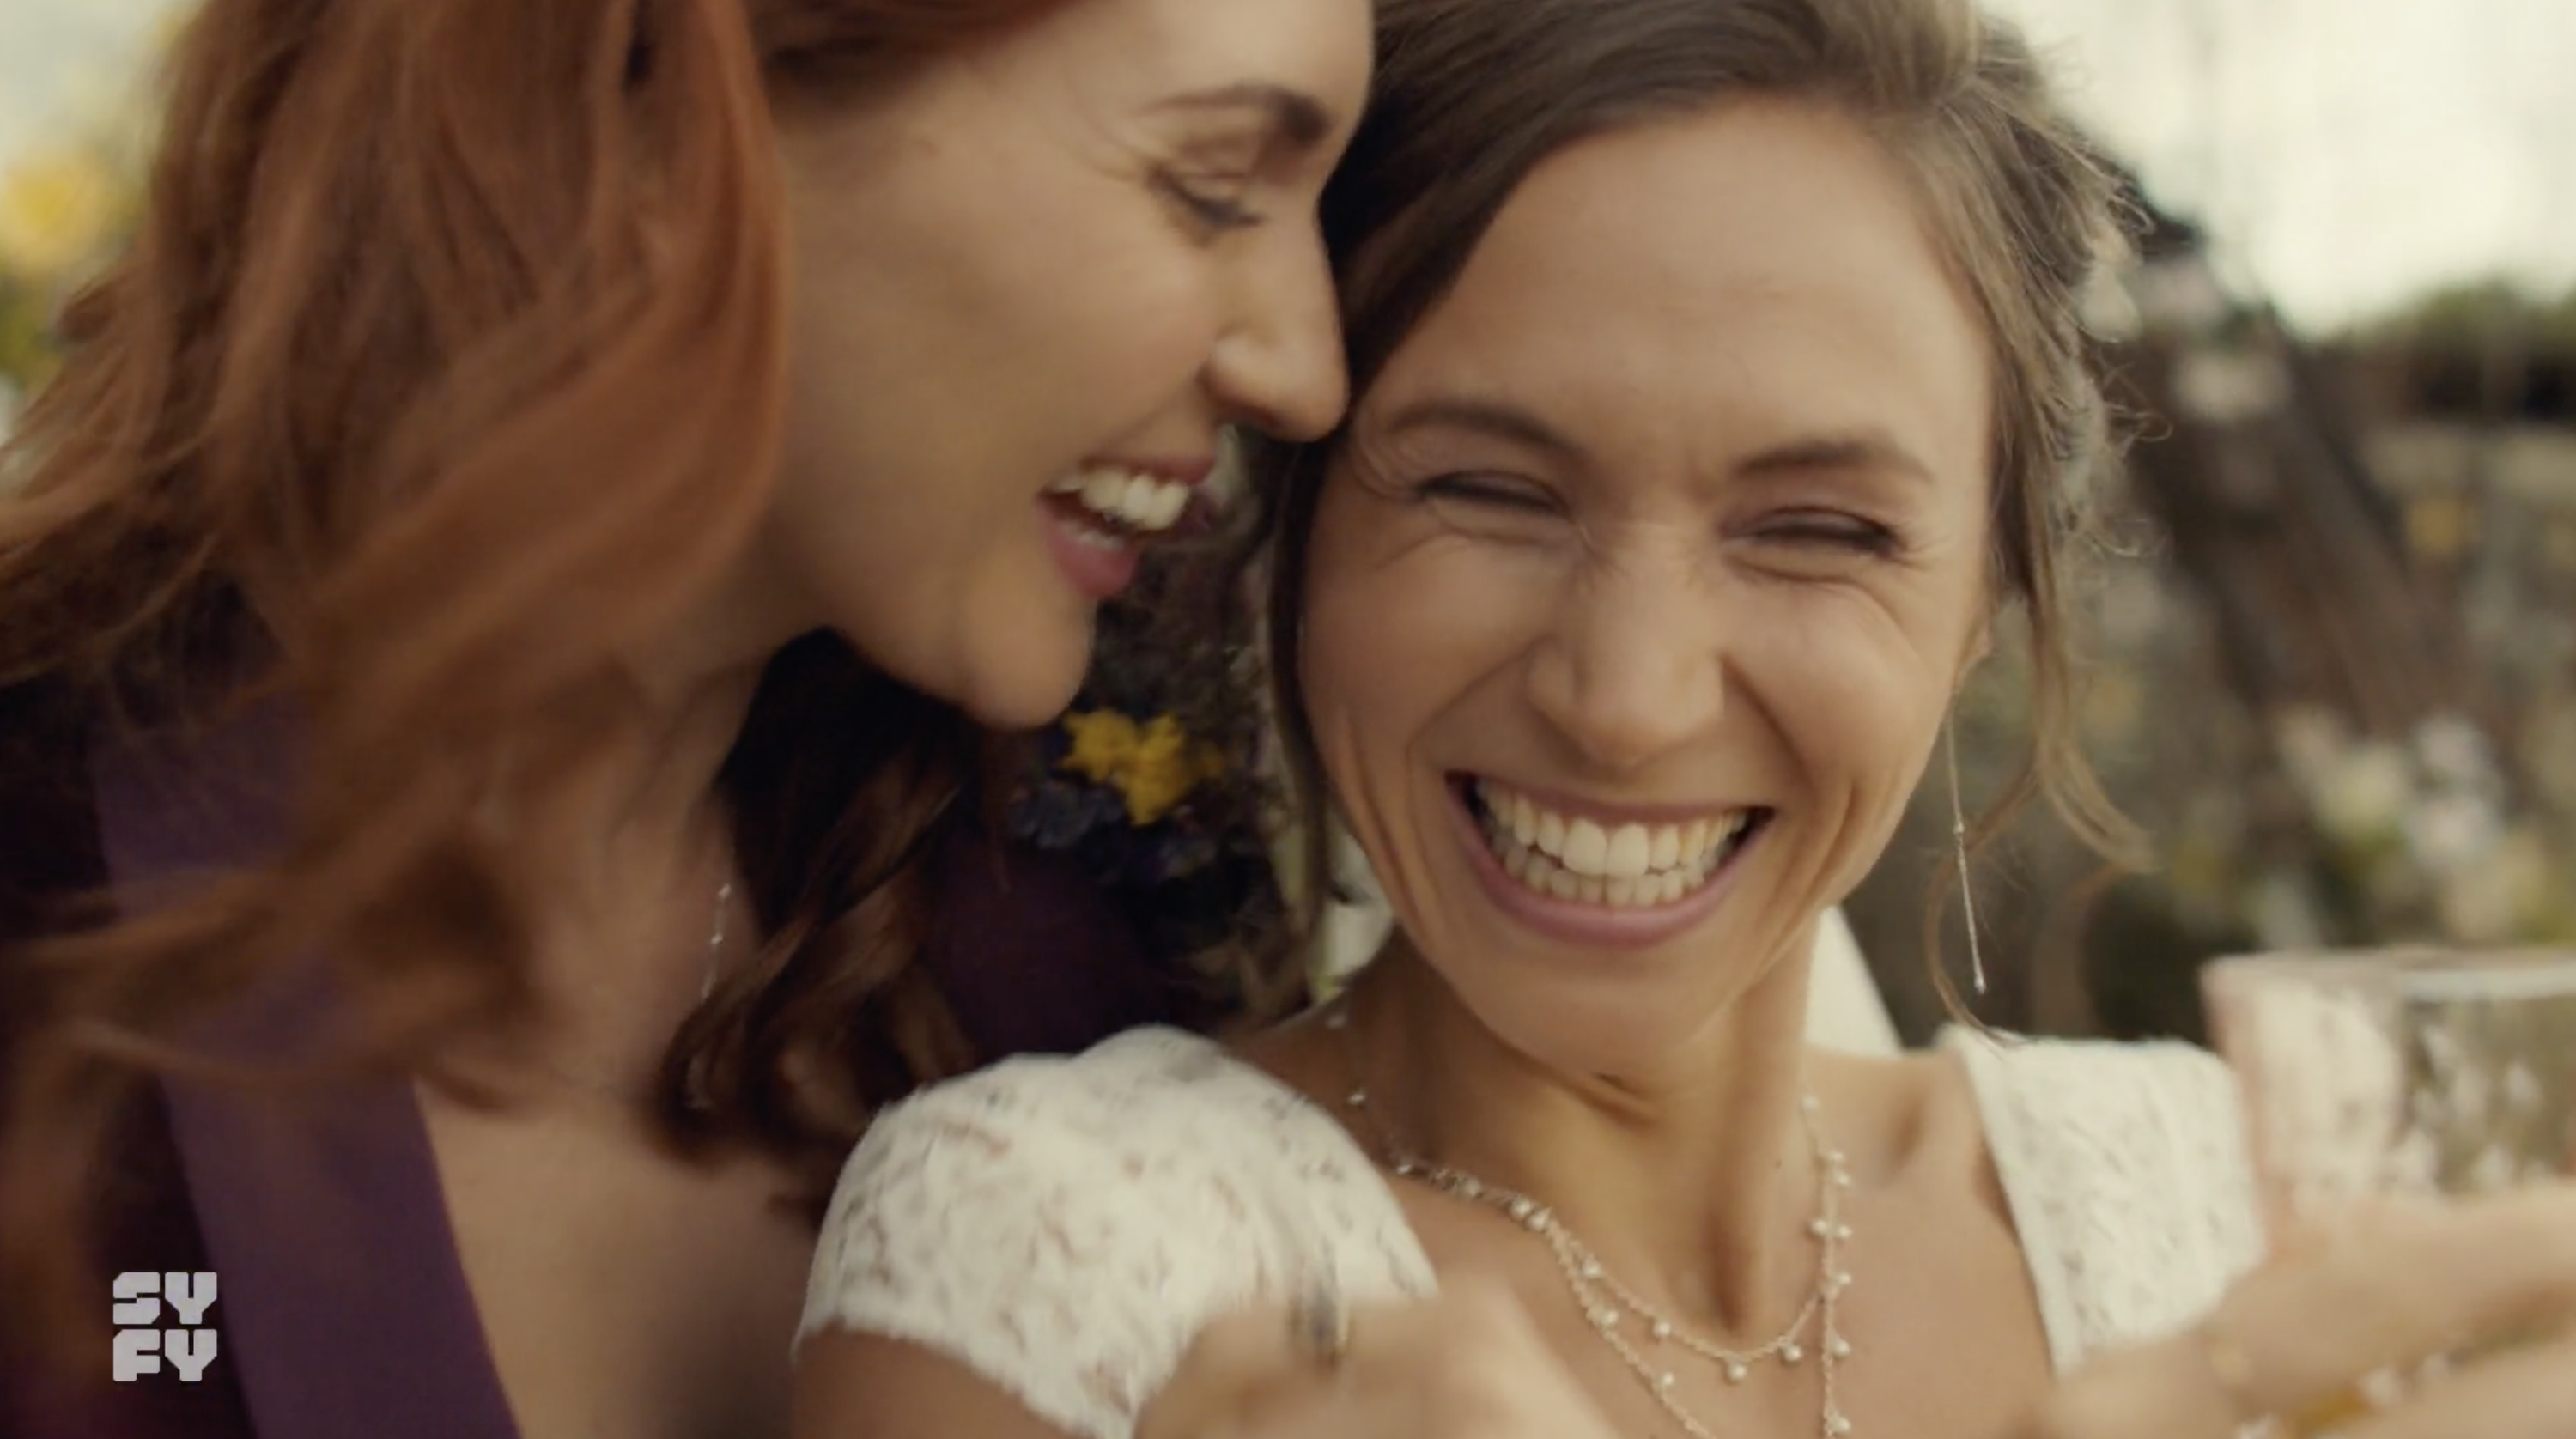 Waverly and Nicole smiling and laughing during their wedding